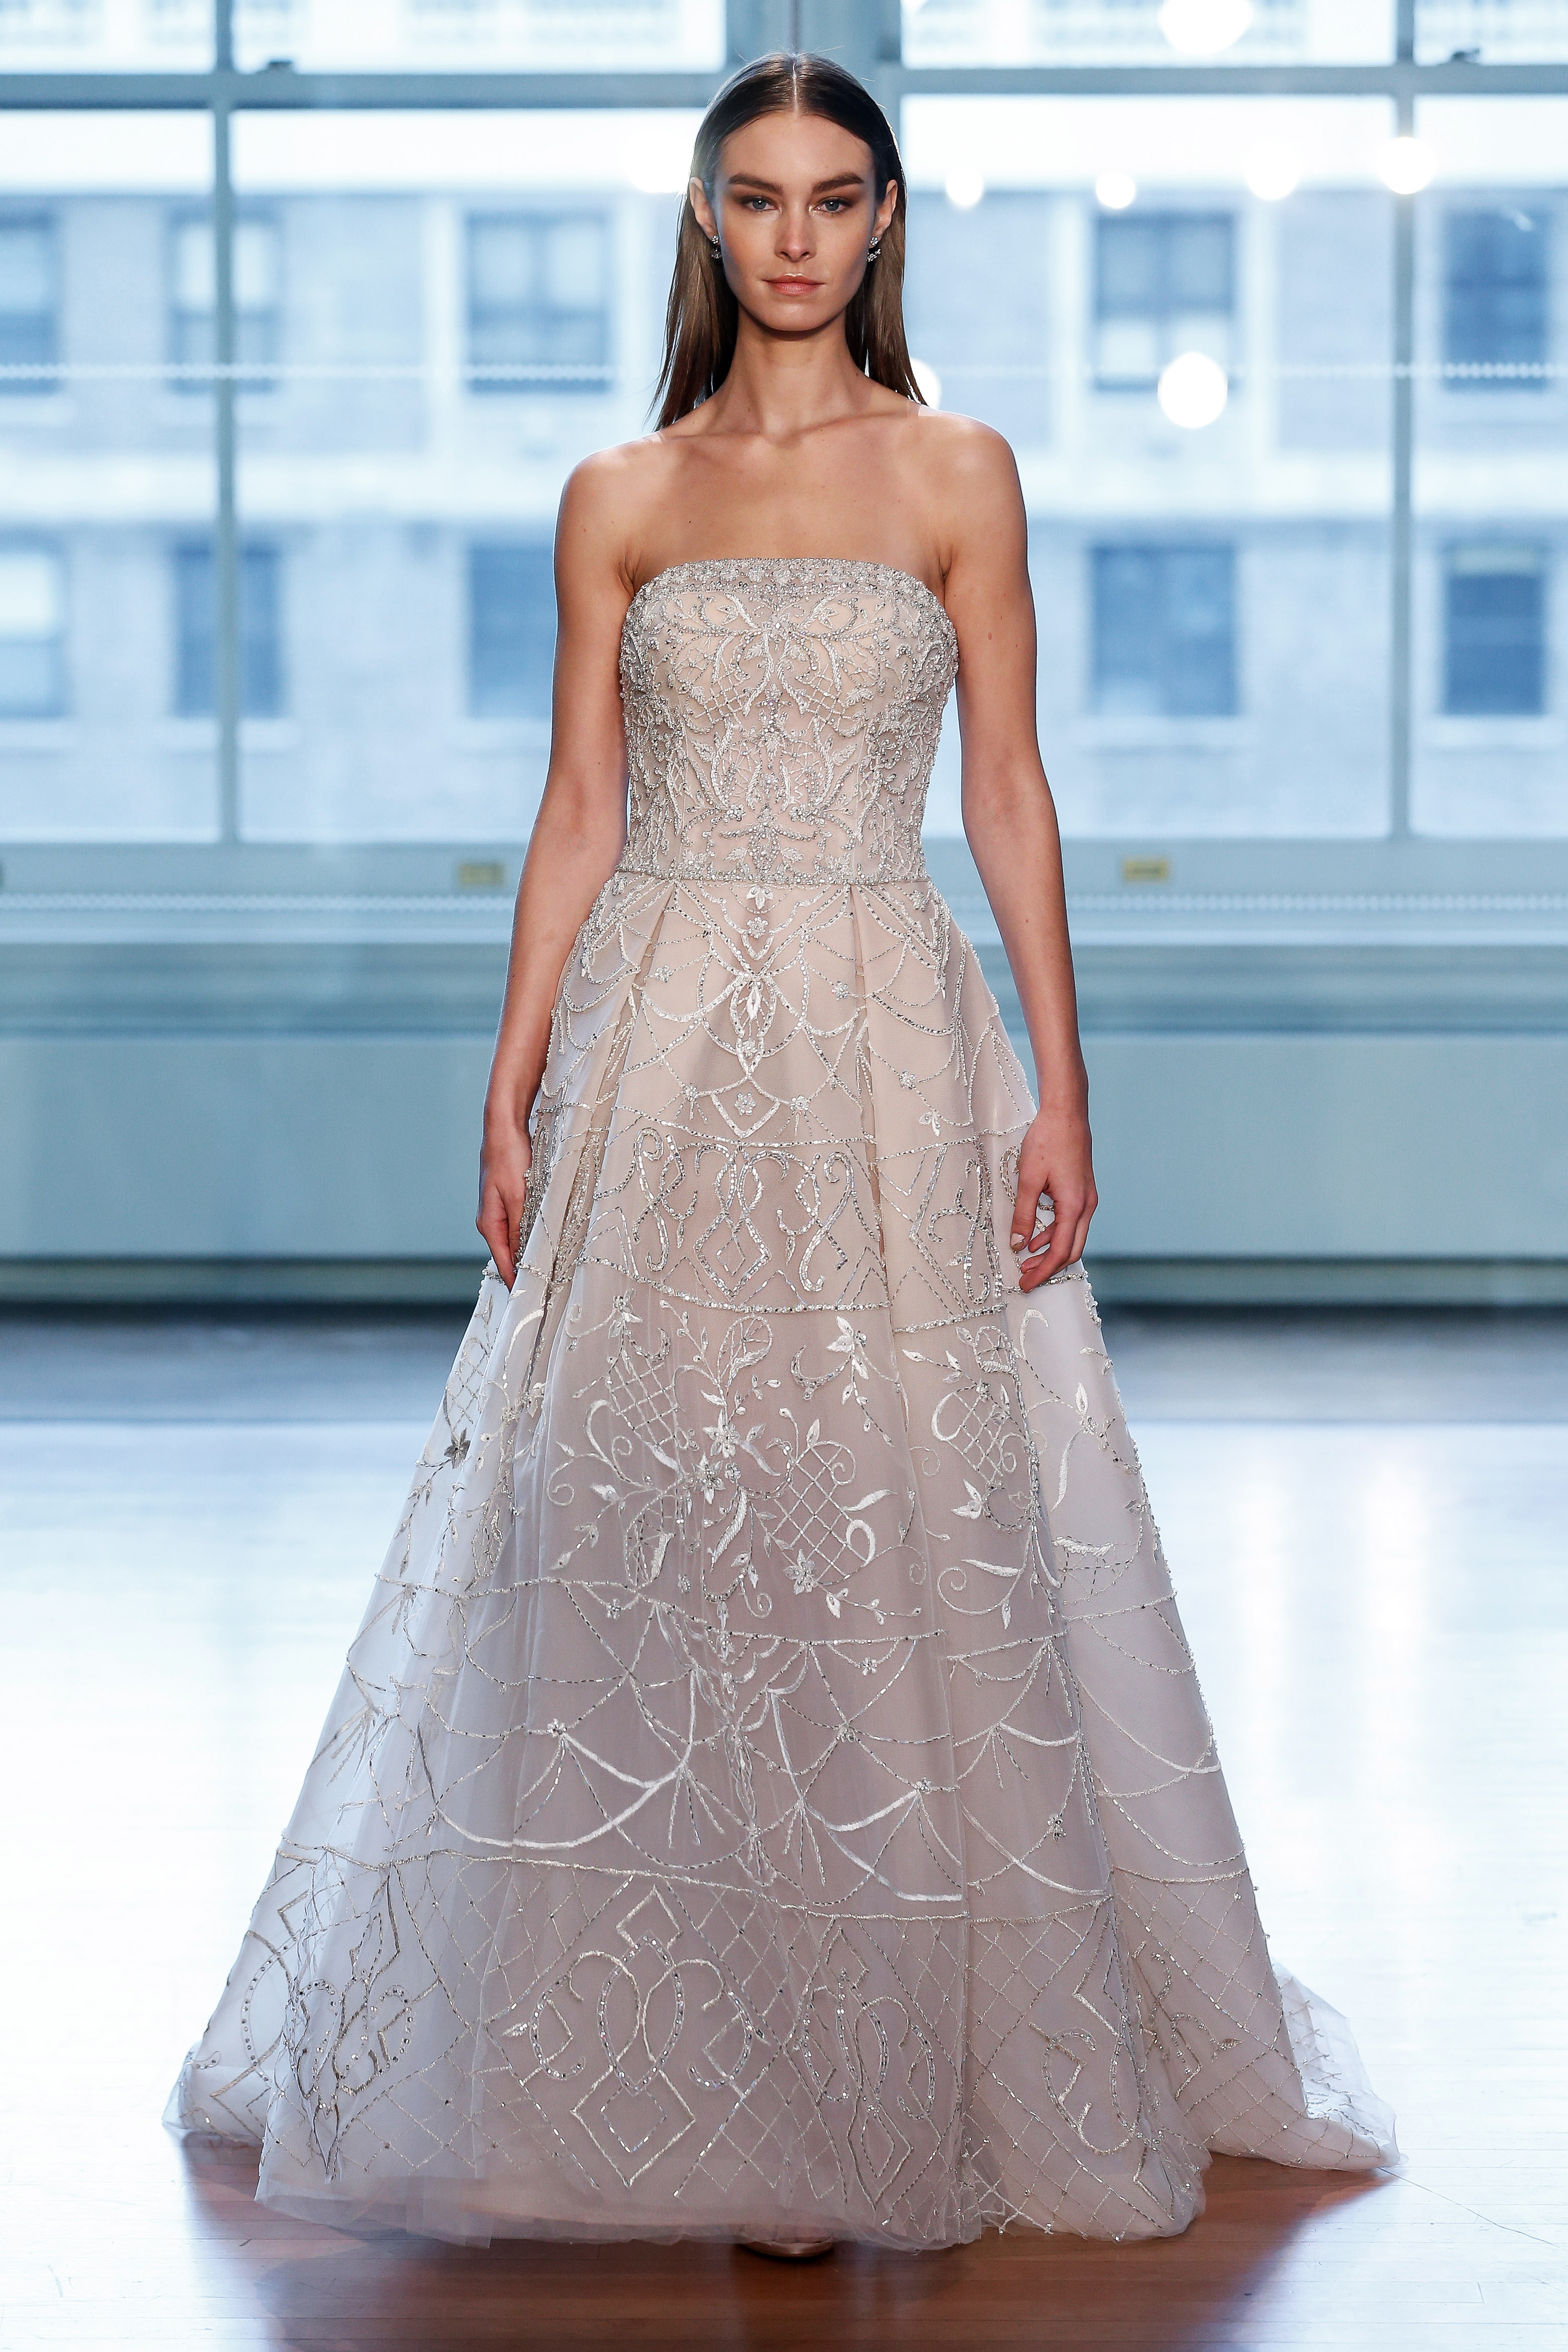 justin alexander wedding dress spring 2019 strapless beaded a-line champagne